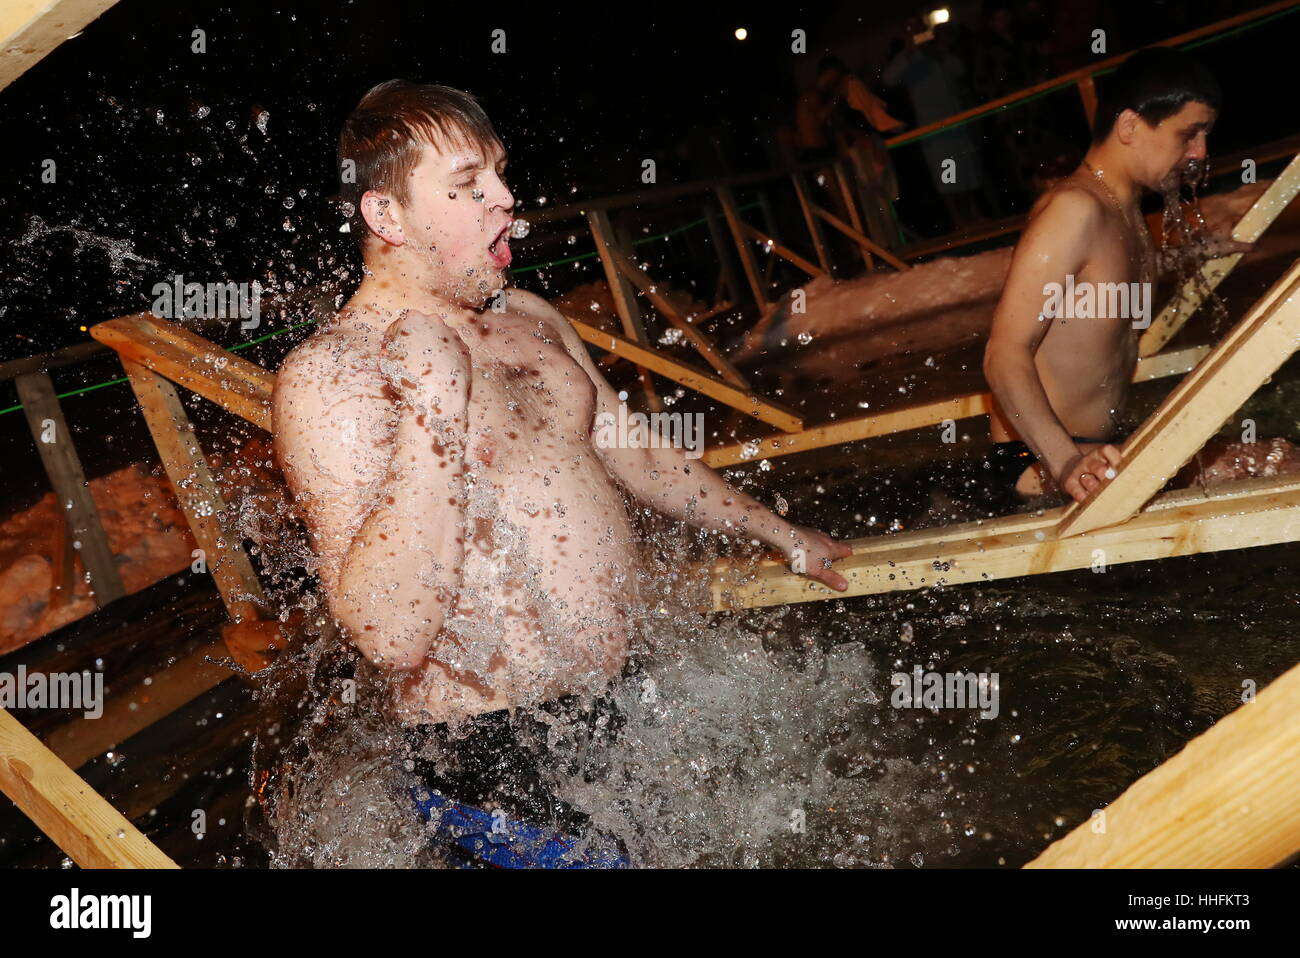 MOSCOW, RUSSIA - JANUARY 18, 2017: A man dips in the icy waters of the Borisovo Ponds during Epiphany celebrations. - Stock Image